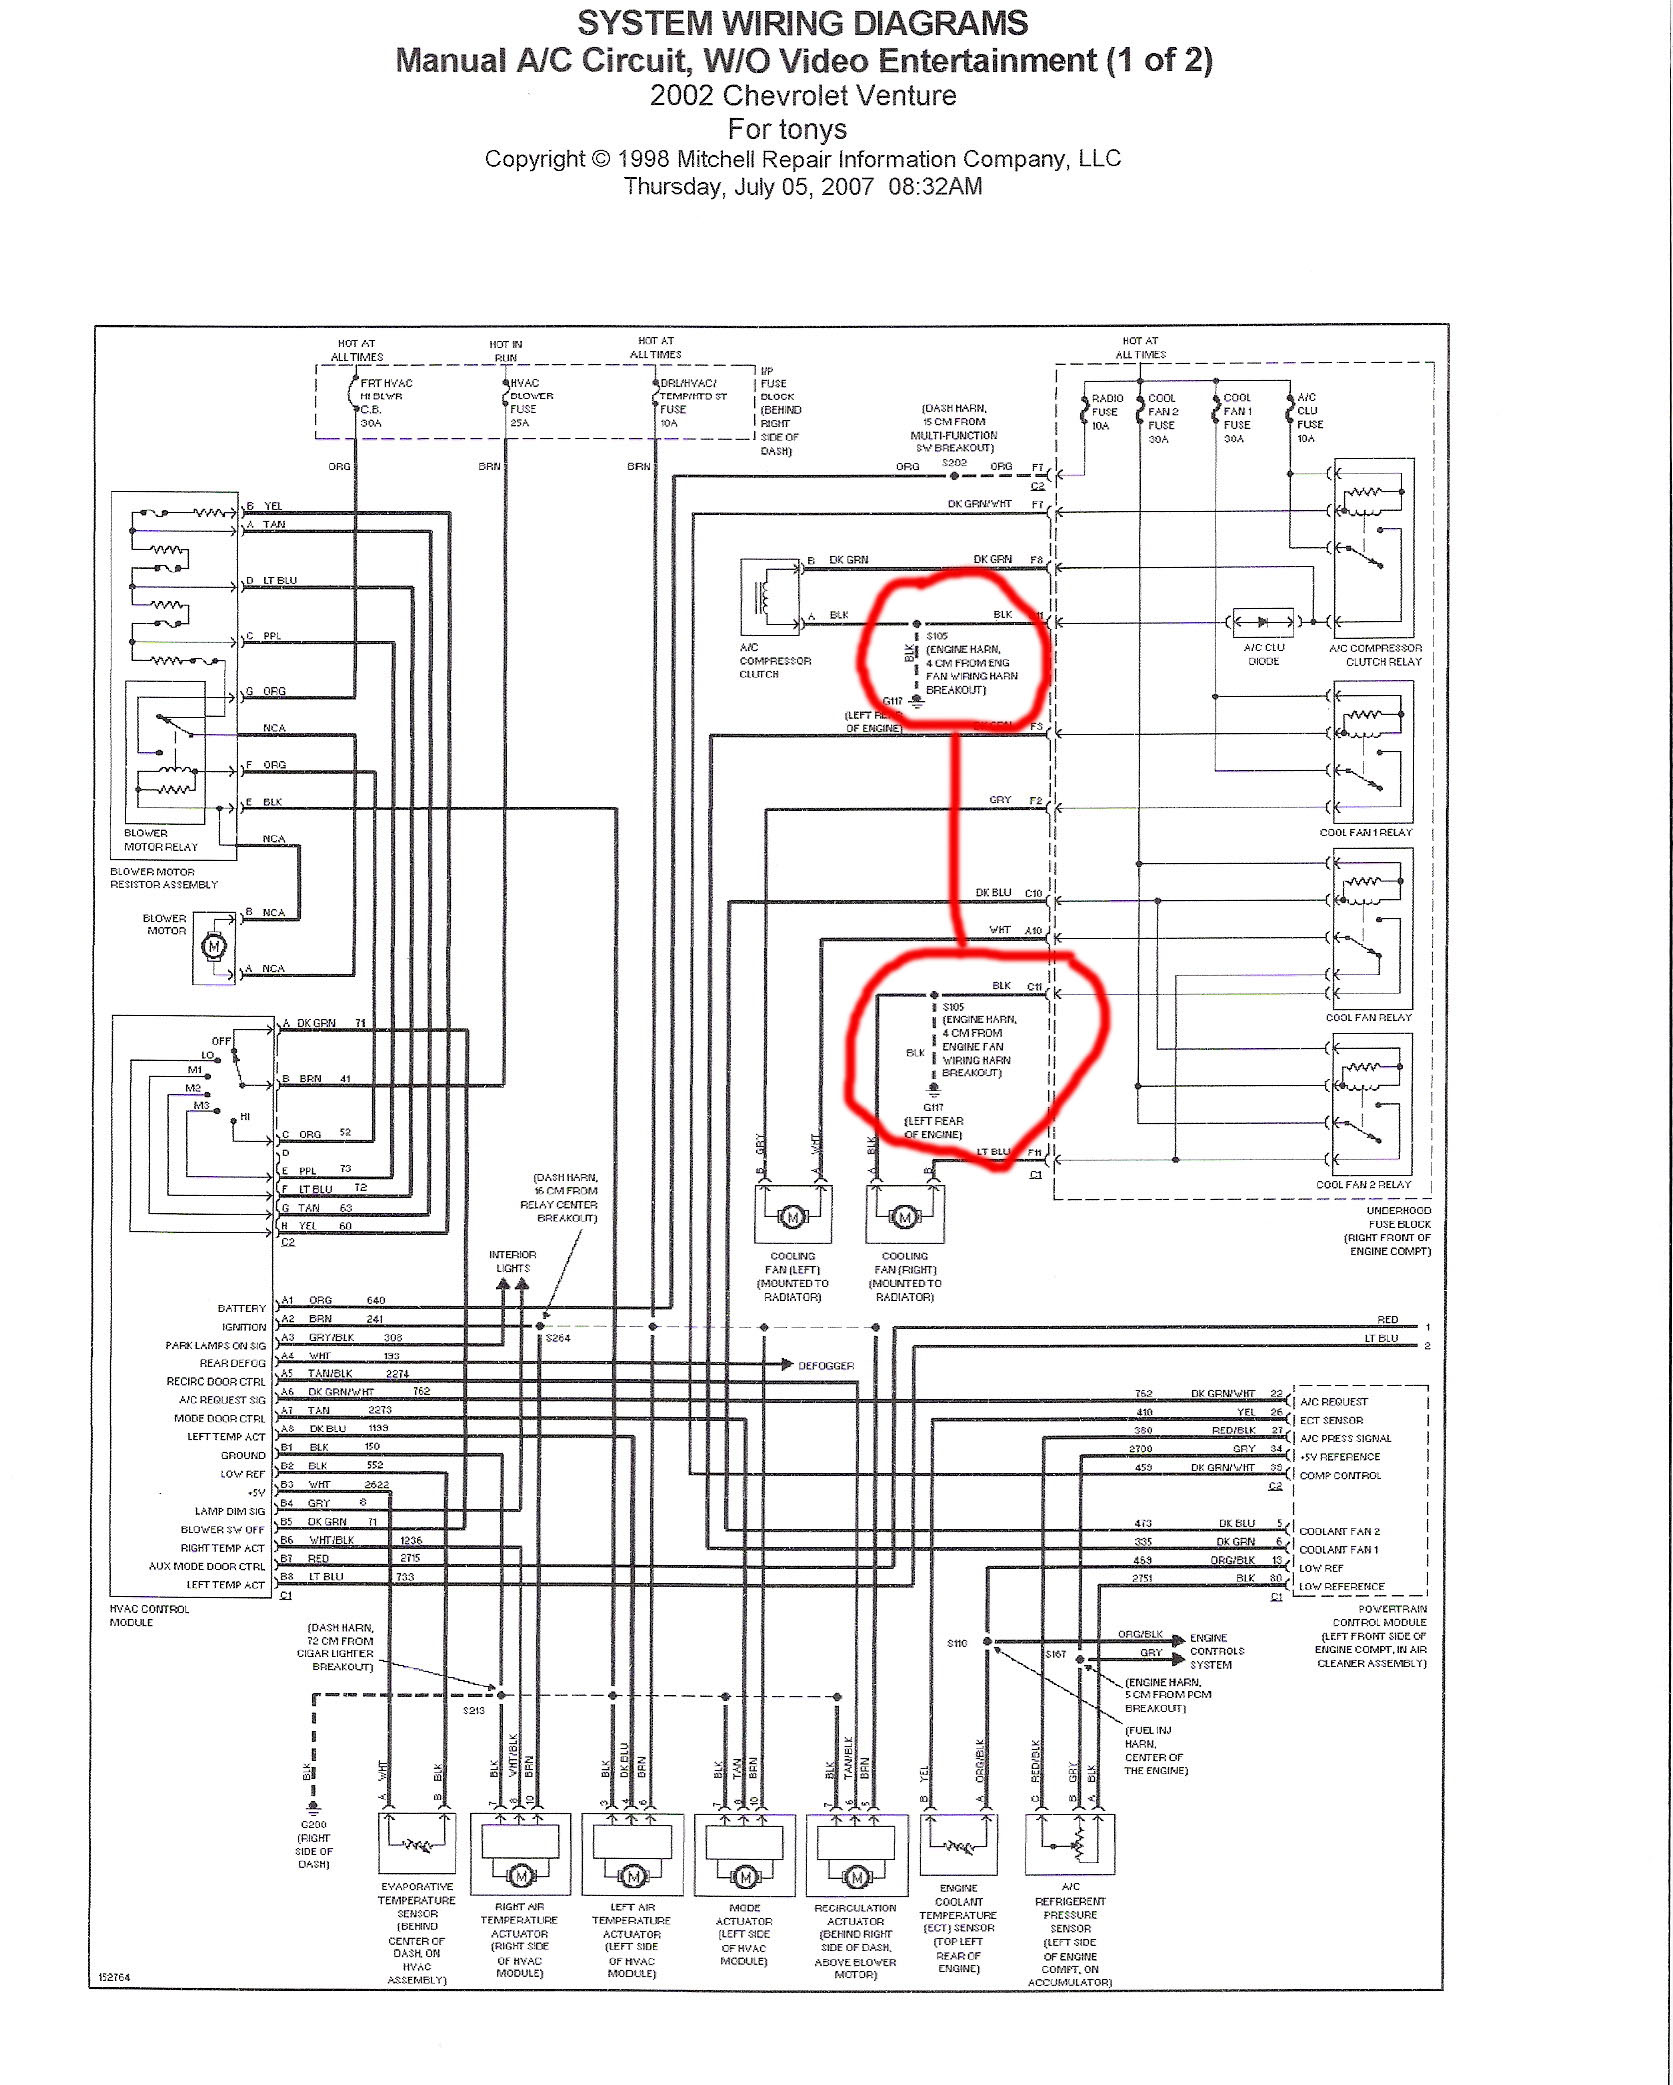 2000 Chevy Venture Wiring Diagram Reveolution Of Stereo 03 Html Imageresizertool Com Blazer Radio